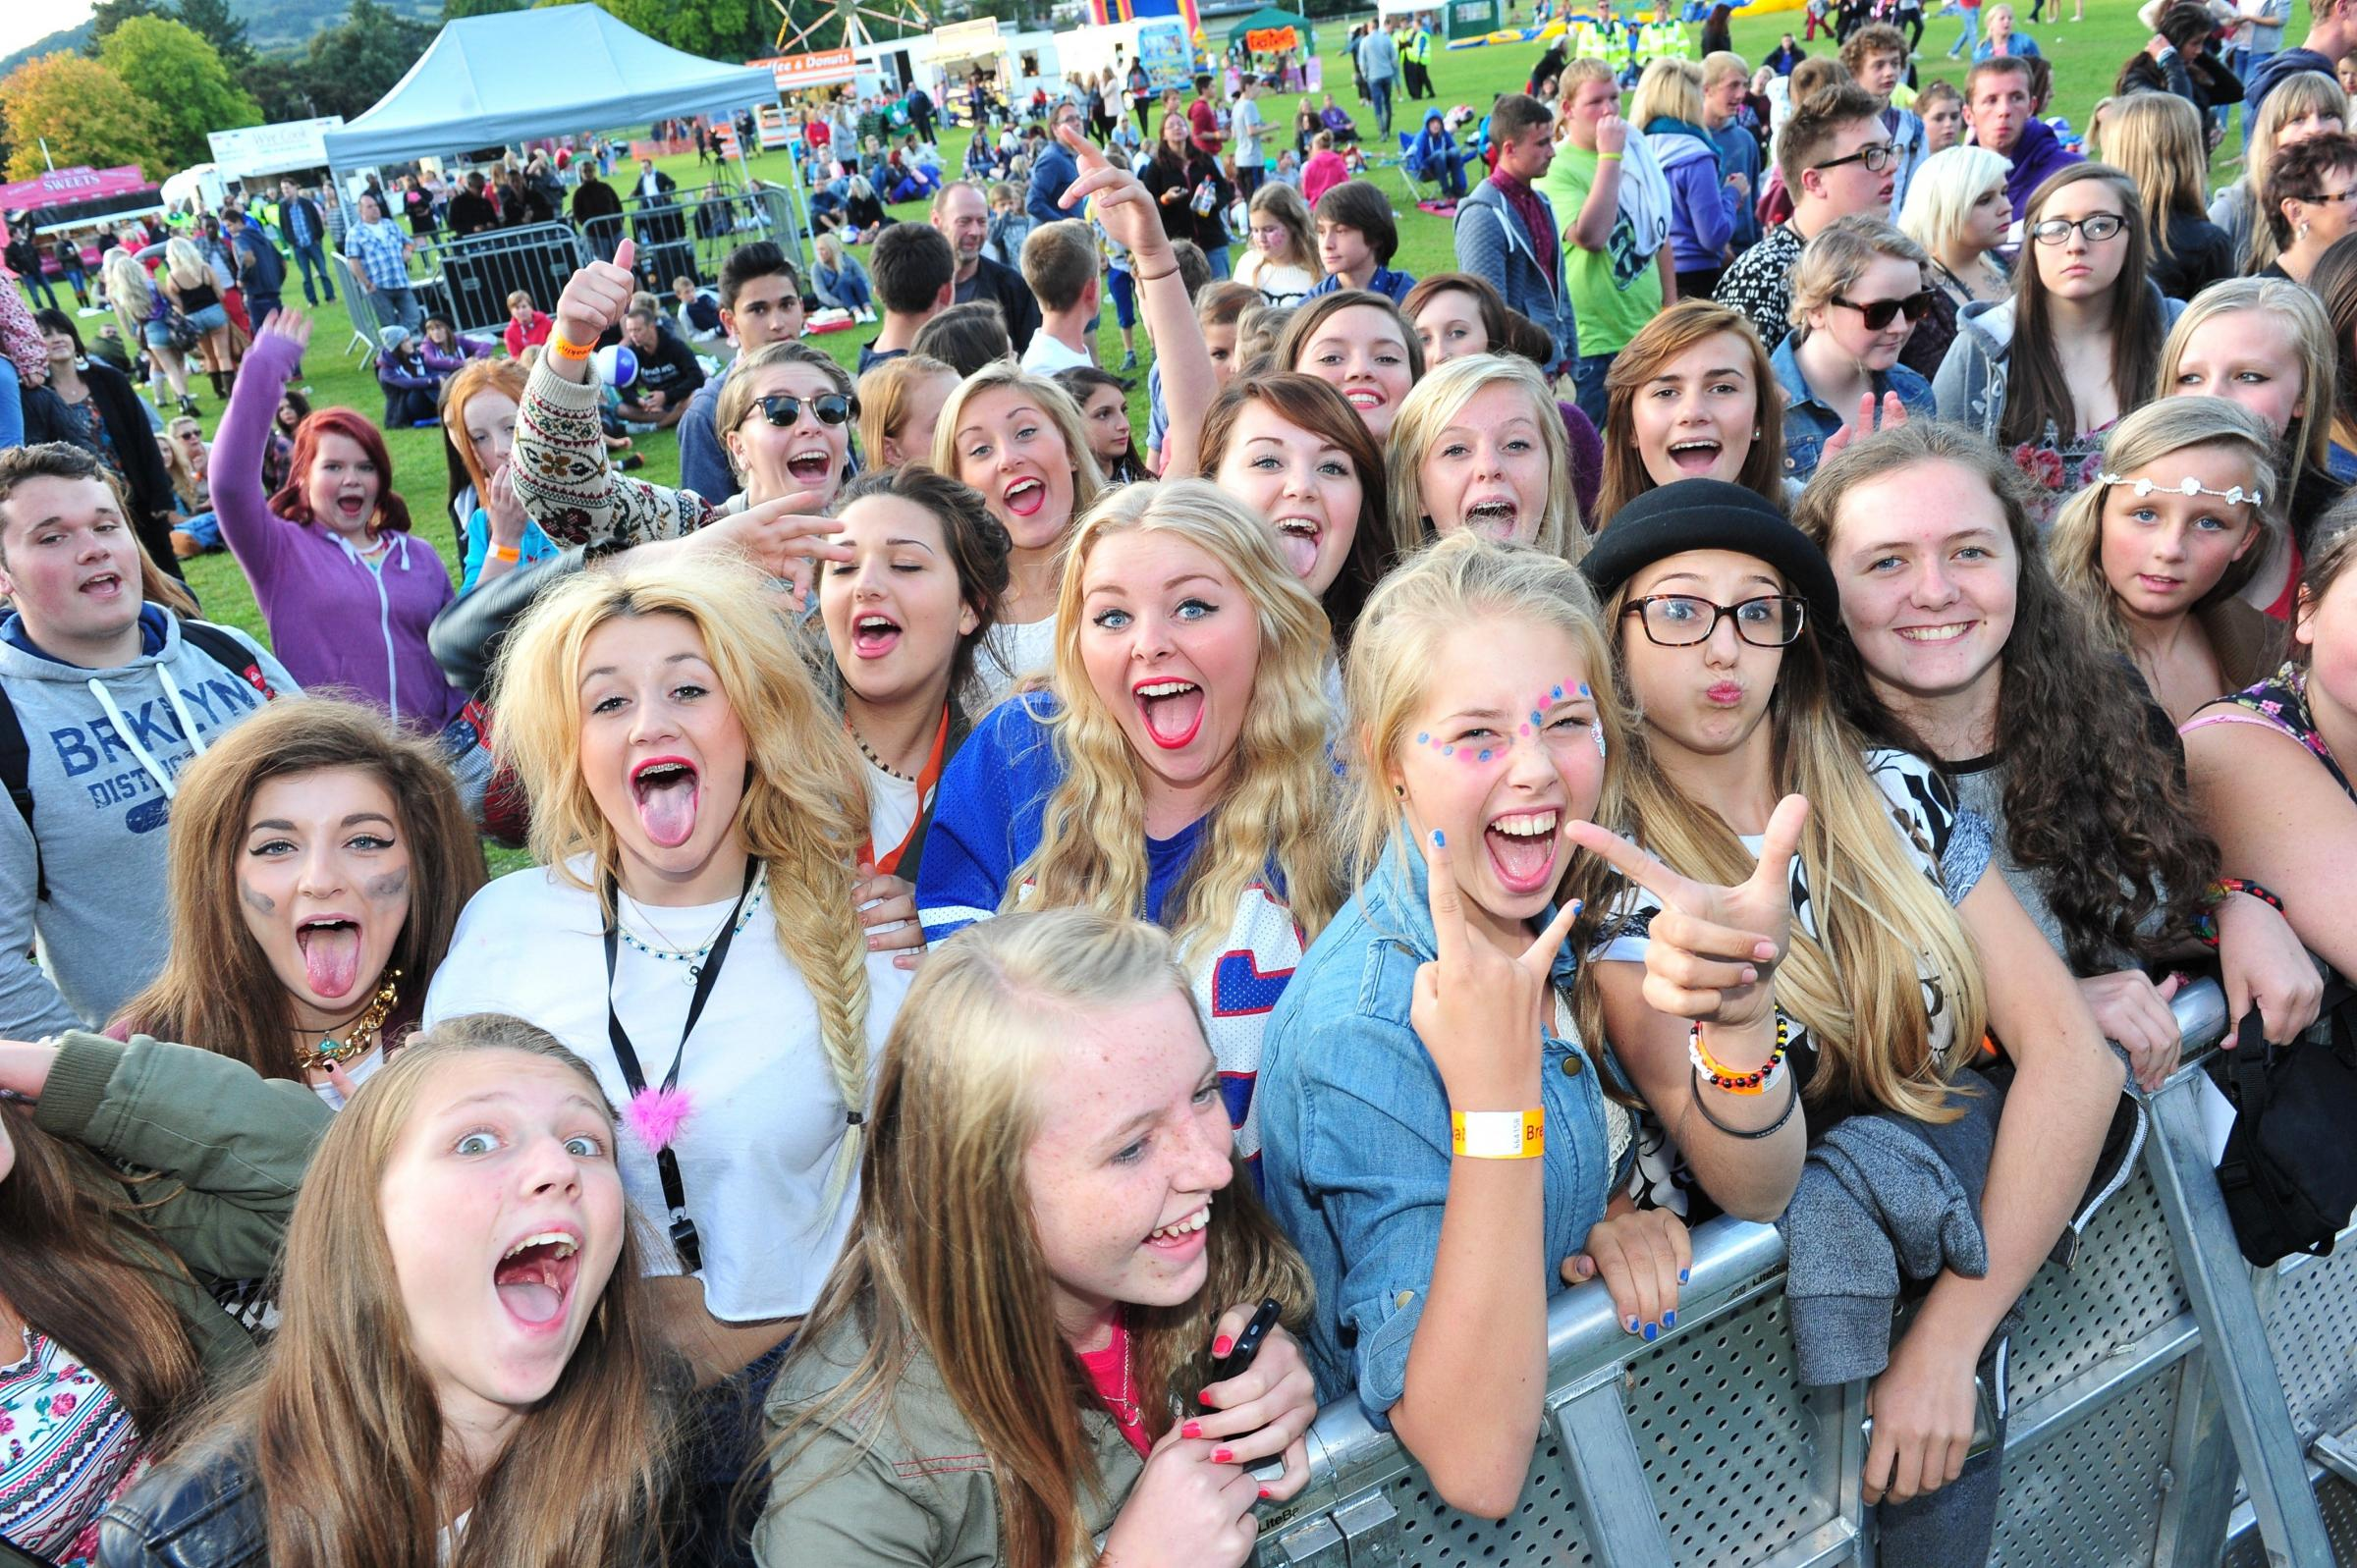 Could dry festival come to Torfaen?